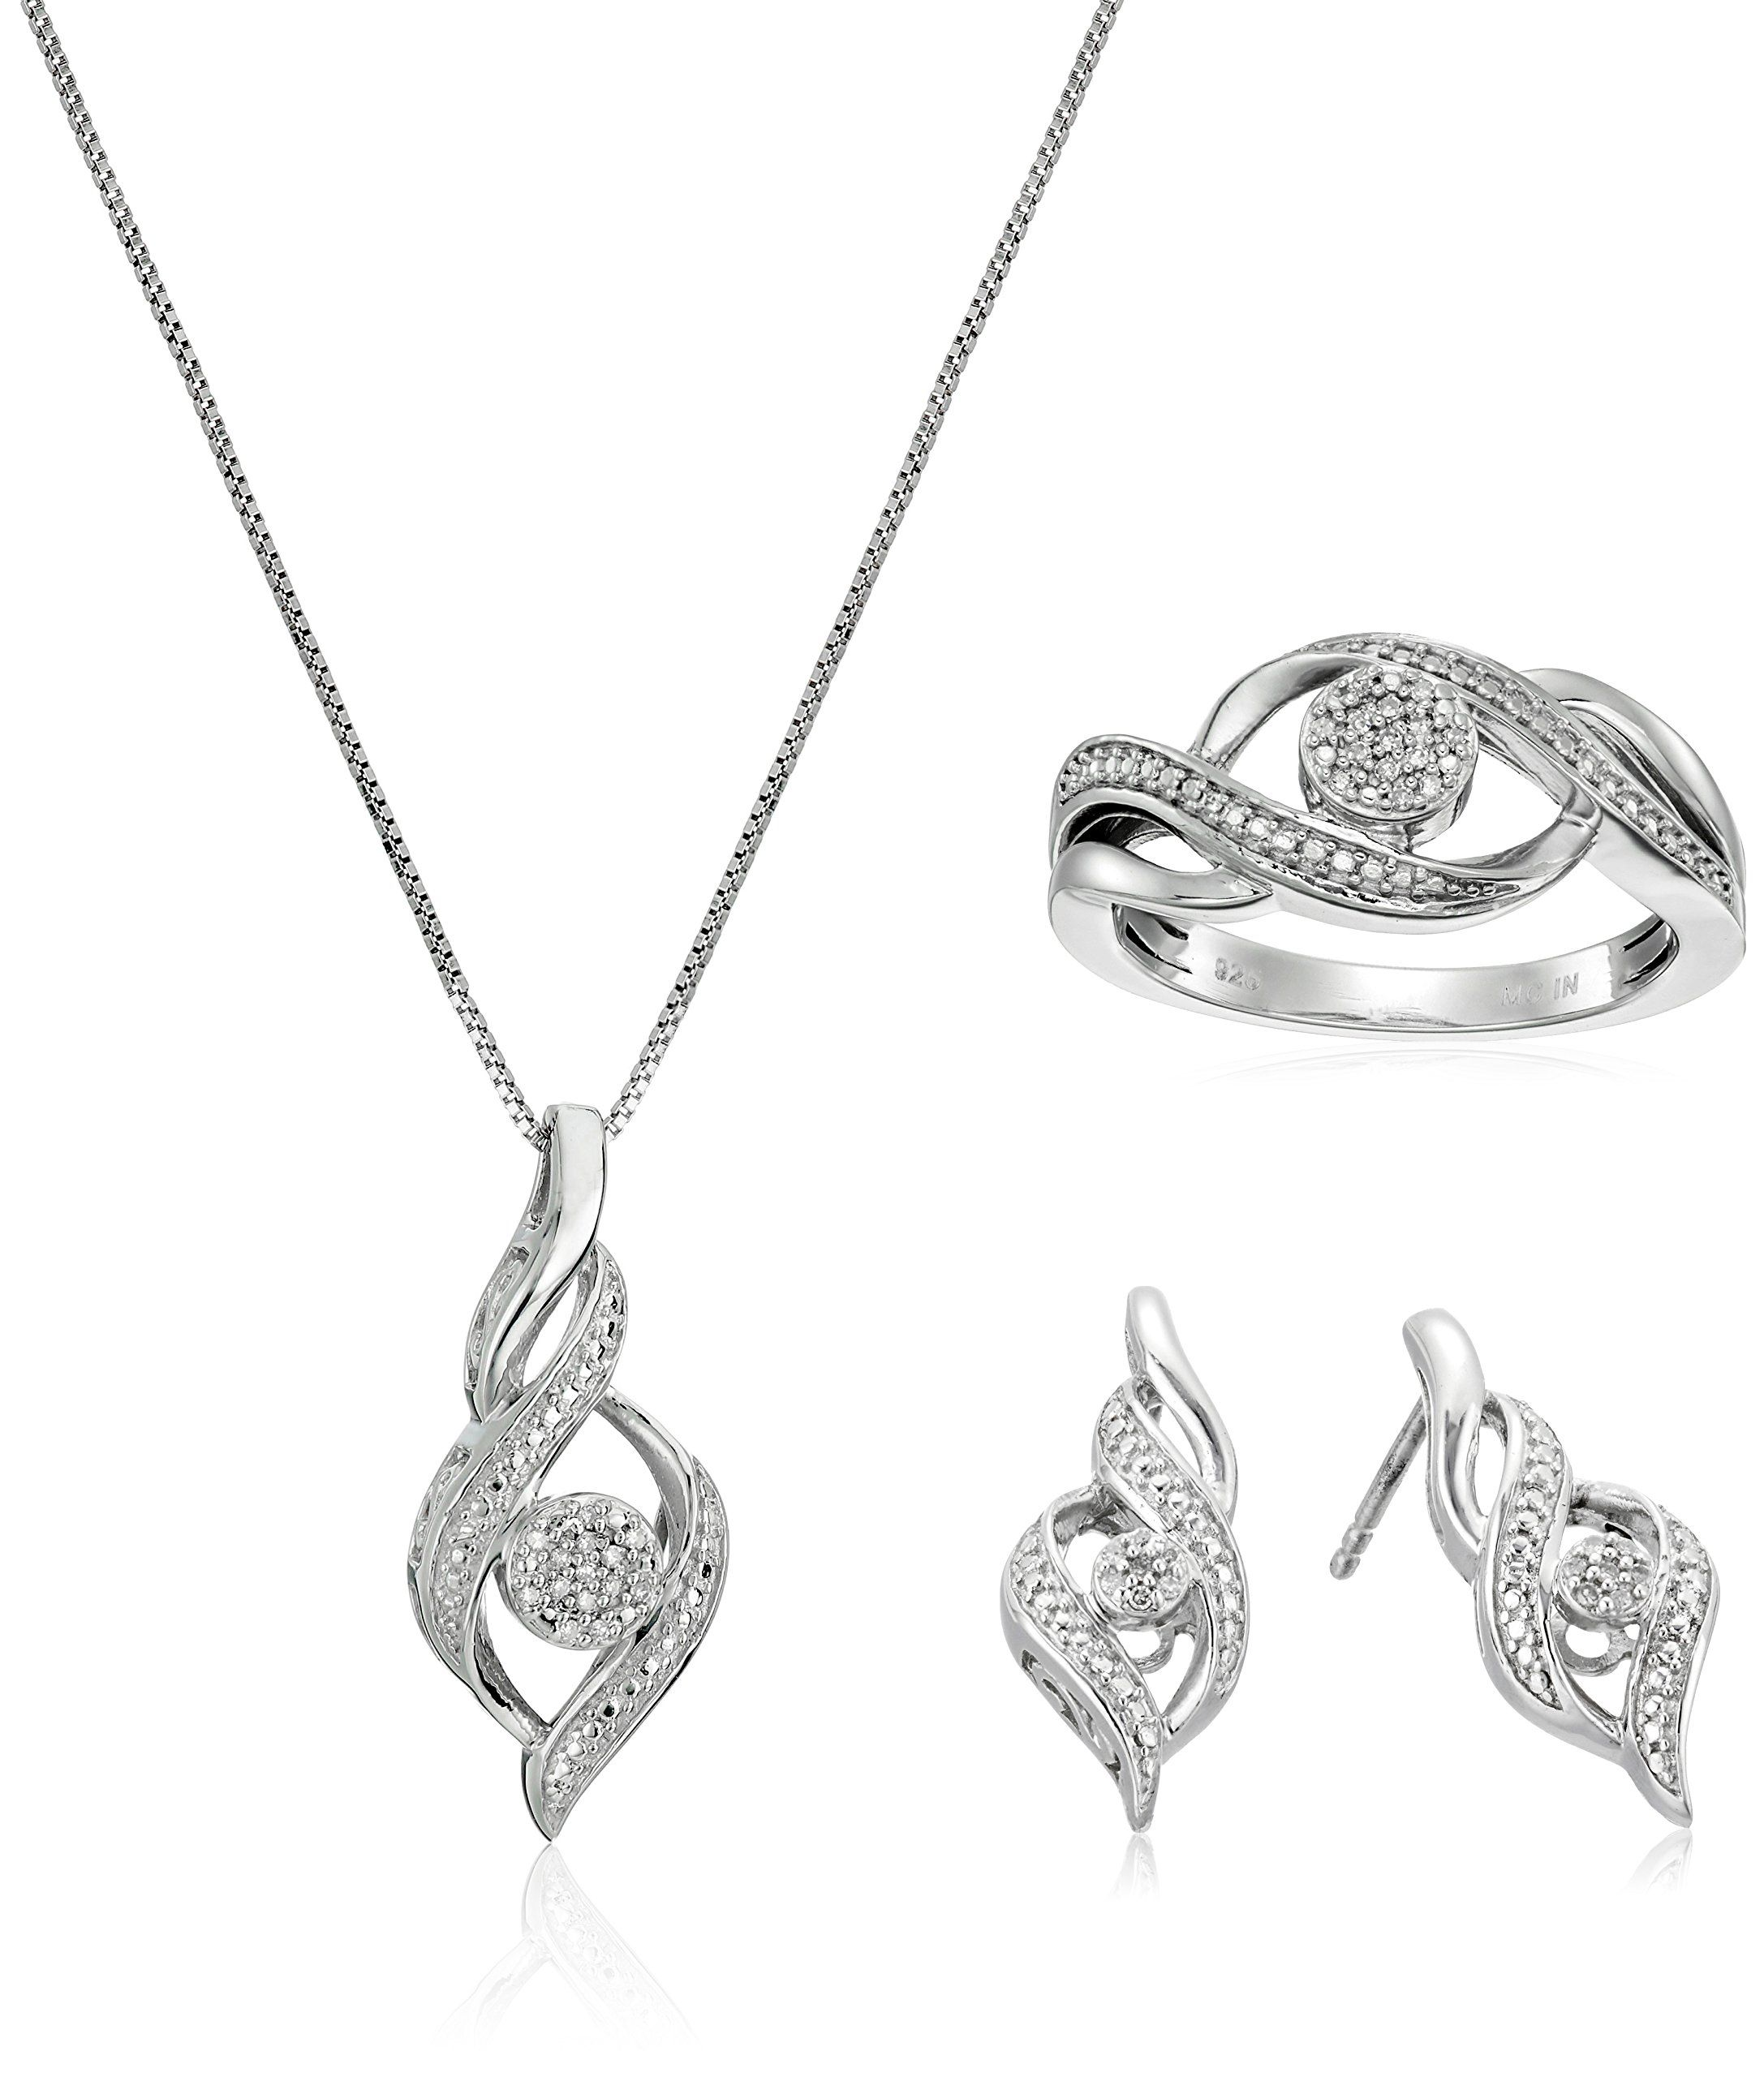 Sterling Silver Diamond Ring, Earrings, and Pendant Necklace Jewelry Set (1/8 cttw, J-K Color, I2-I3 Clarity). Classic and versatile diamond ring, pendant necklace, and earrings set perfect with everyday attire or an evening out. Exquisitely crafted in 925 sterling silver. Box chain for pendant, secure butterfly backs for earrings, size 7 ring.